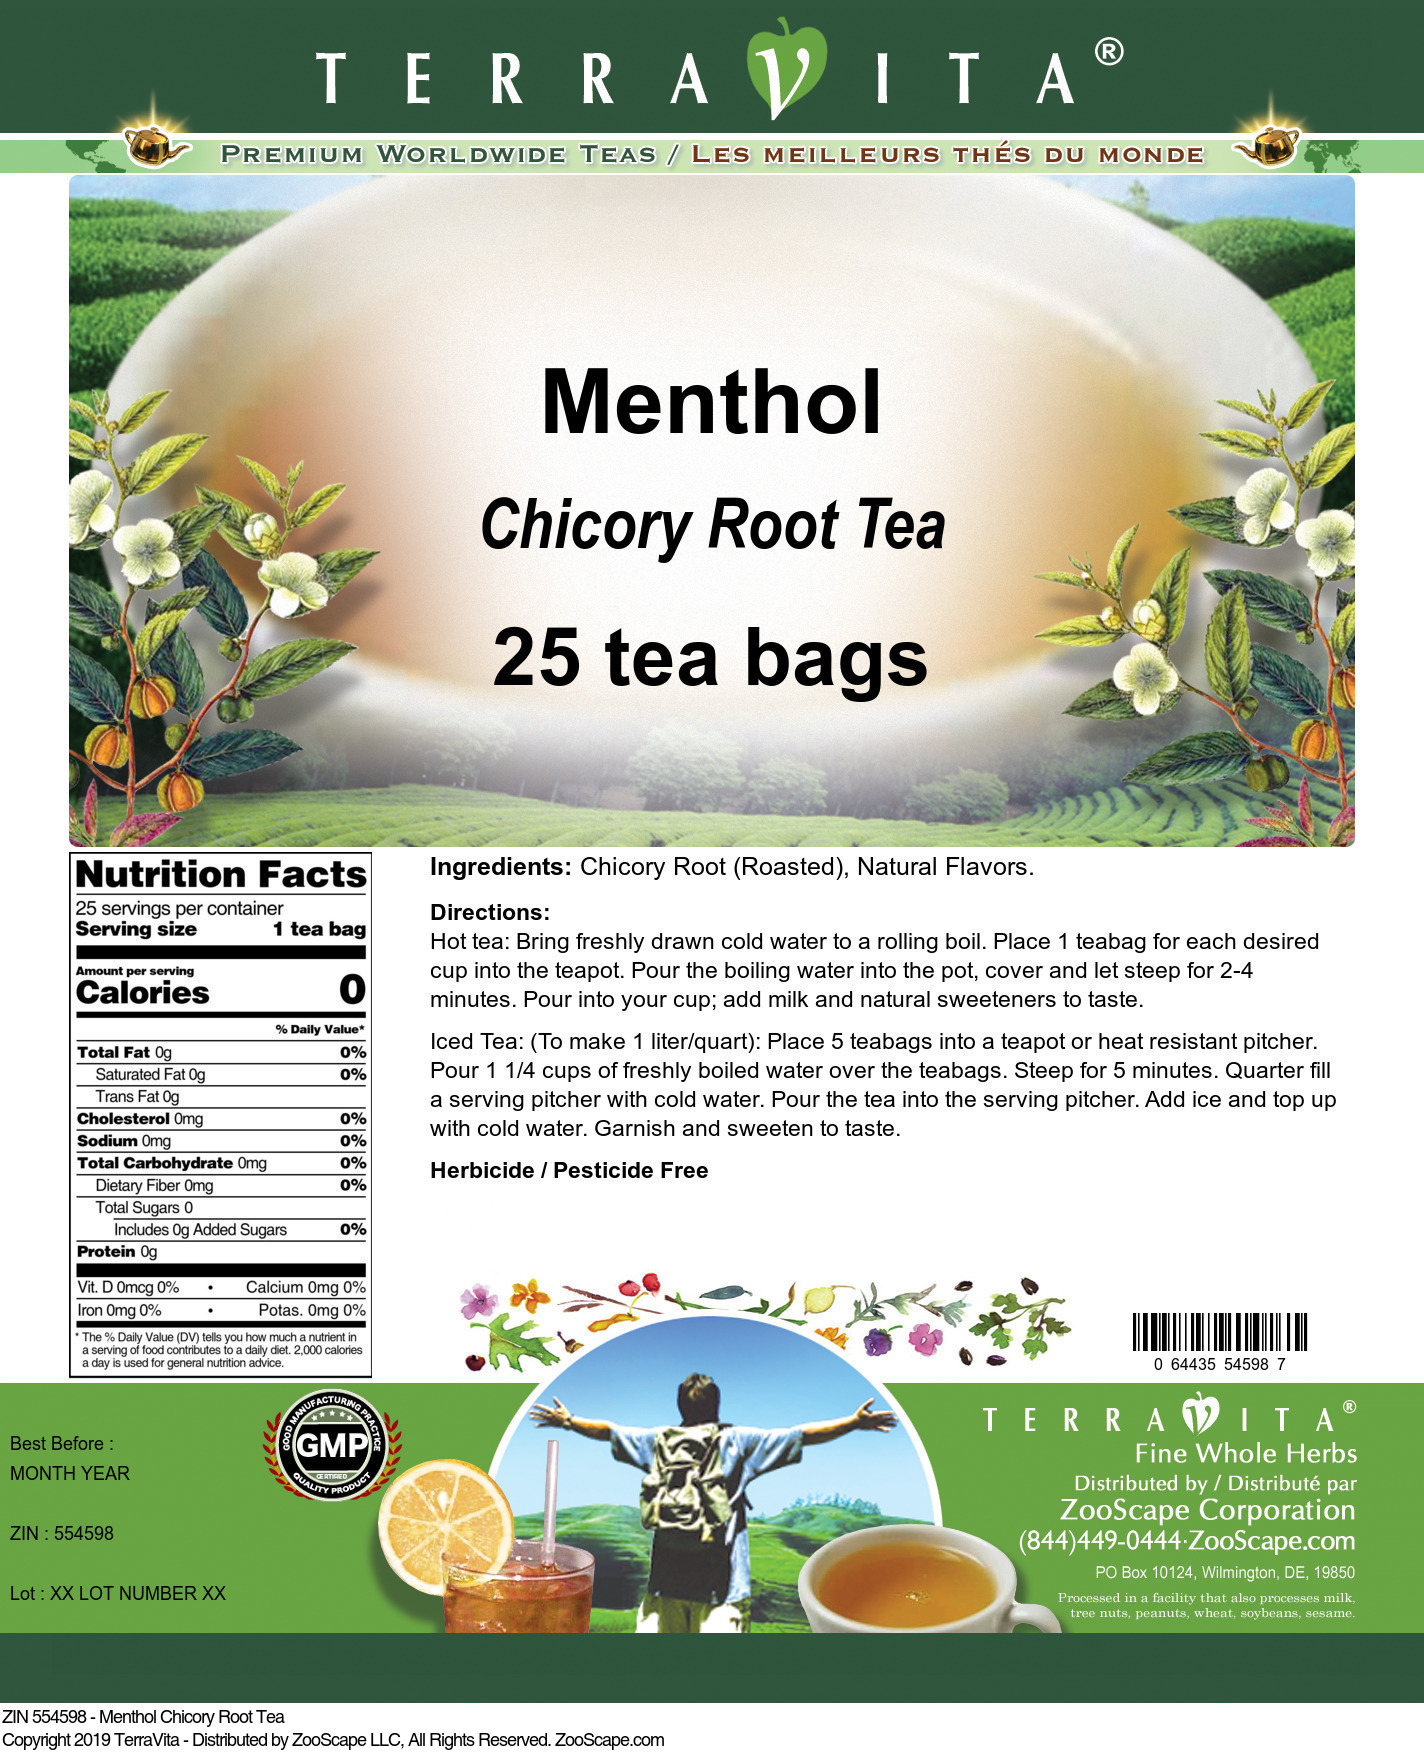 Menthol Chicory Root